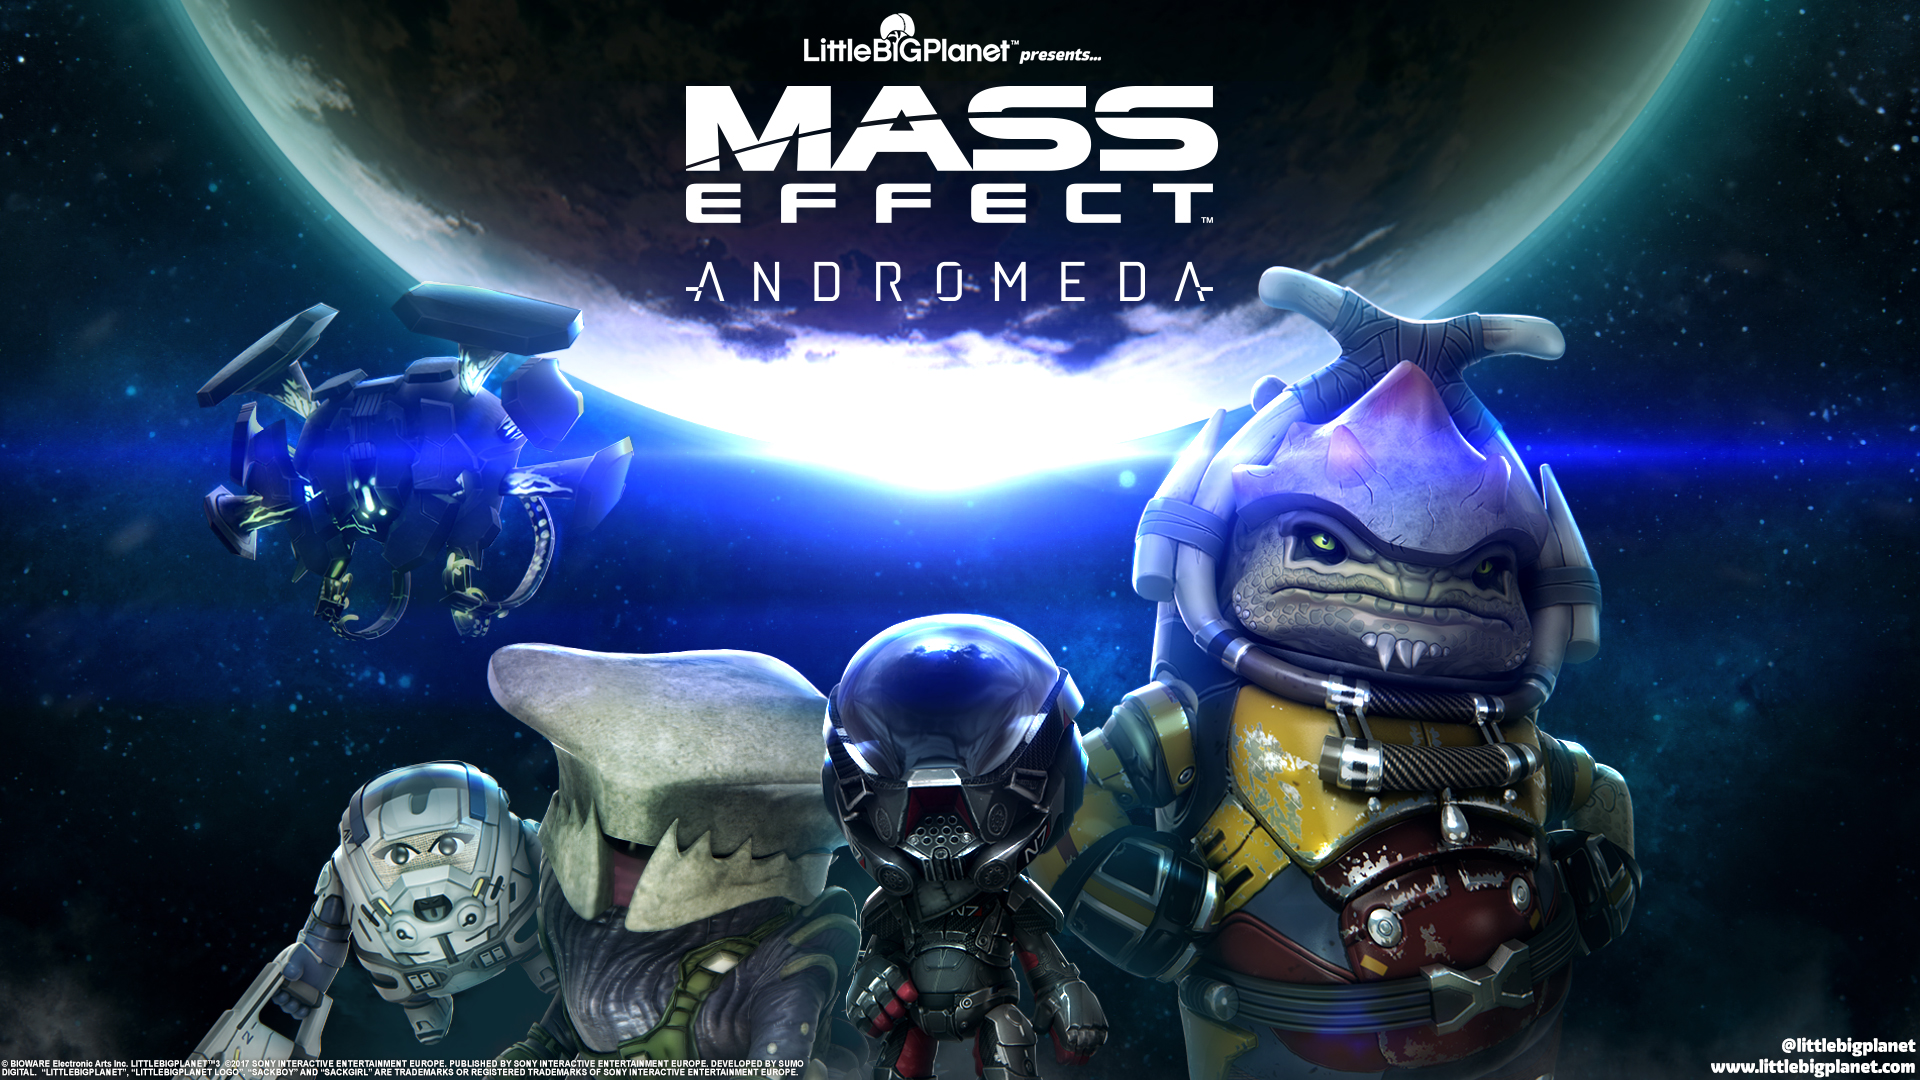 Mass Effect Andromeda Full Hd 3d Wallpapers: Mass Effect Andromeda Little Big Planet 3, HD Games, 4k